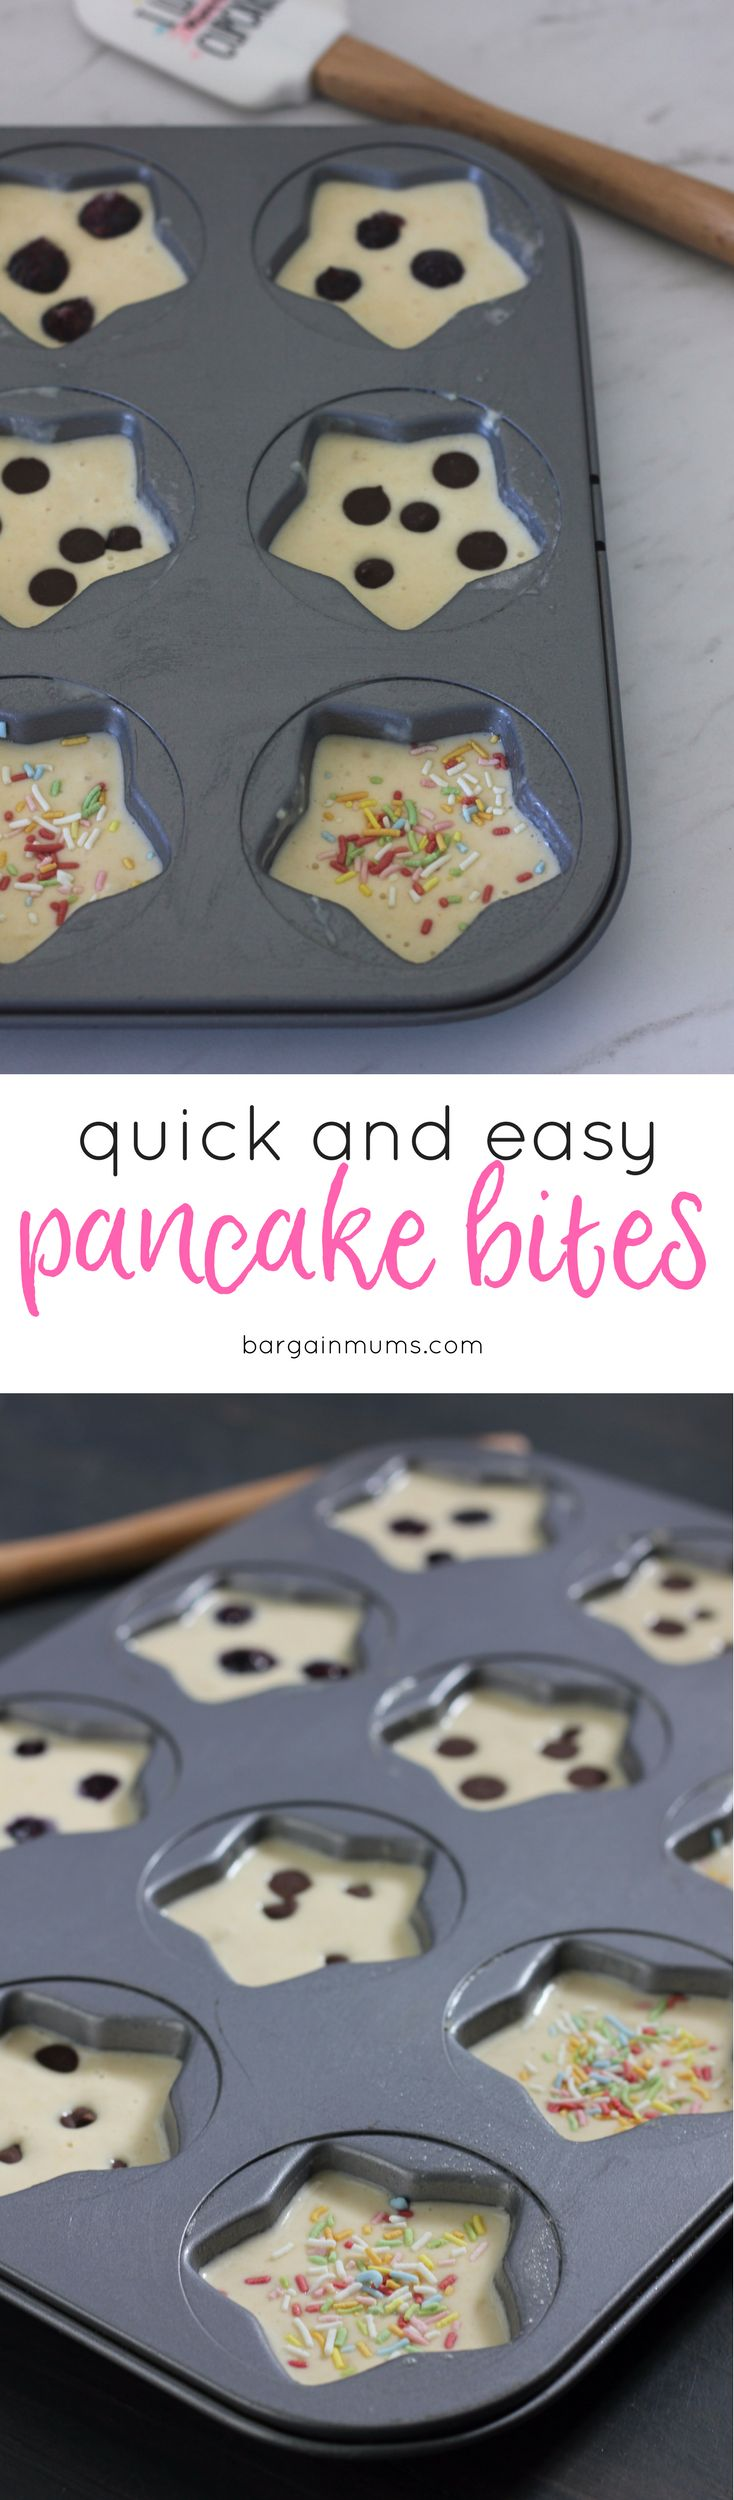 These mini pancake bites are basically a muffin made using pancake batter, and they are perfect for something different. They can be frozen, and make great lunch box treats. I make a basic pancake batter, spoon the mixture into muffin tins, then sprinkle with toppings, like blueberries, chocolate chips and sprinkles. They are always a huge hit, and cost next to nothing to make. Recipe here --> http://bargainmums.com.au/mini-pancake-bites